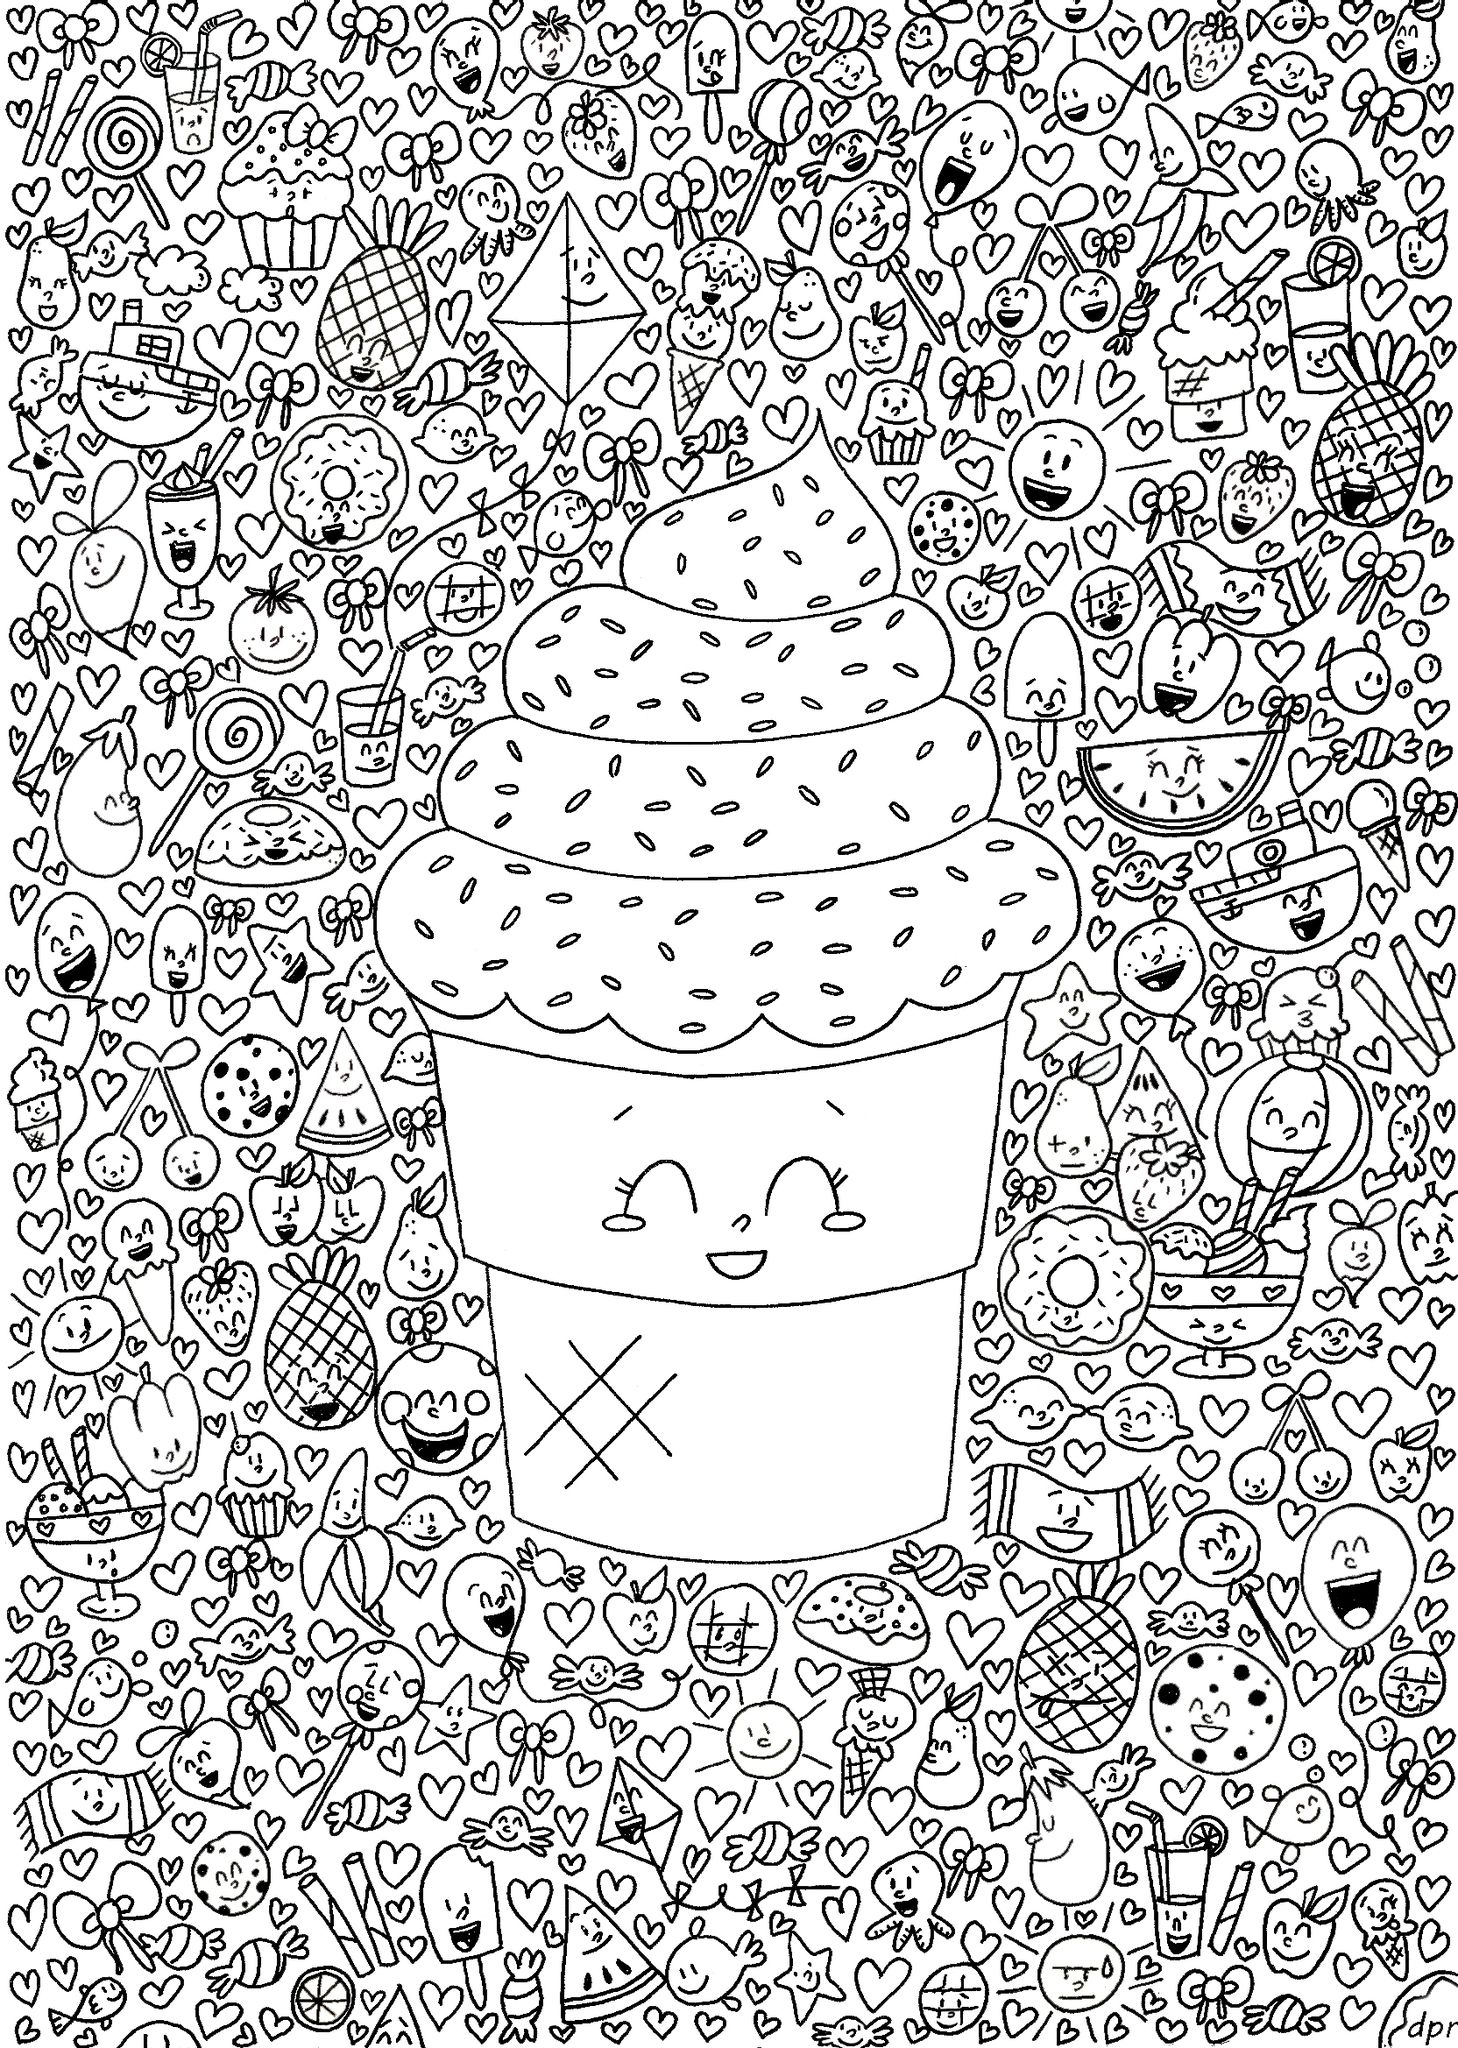 Coloriage art th rapie kawaii coloriage imprimer pinterest - Grand dessin a colorier ...